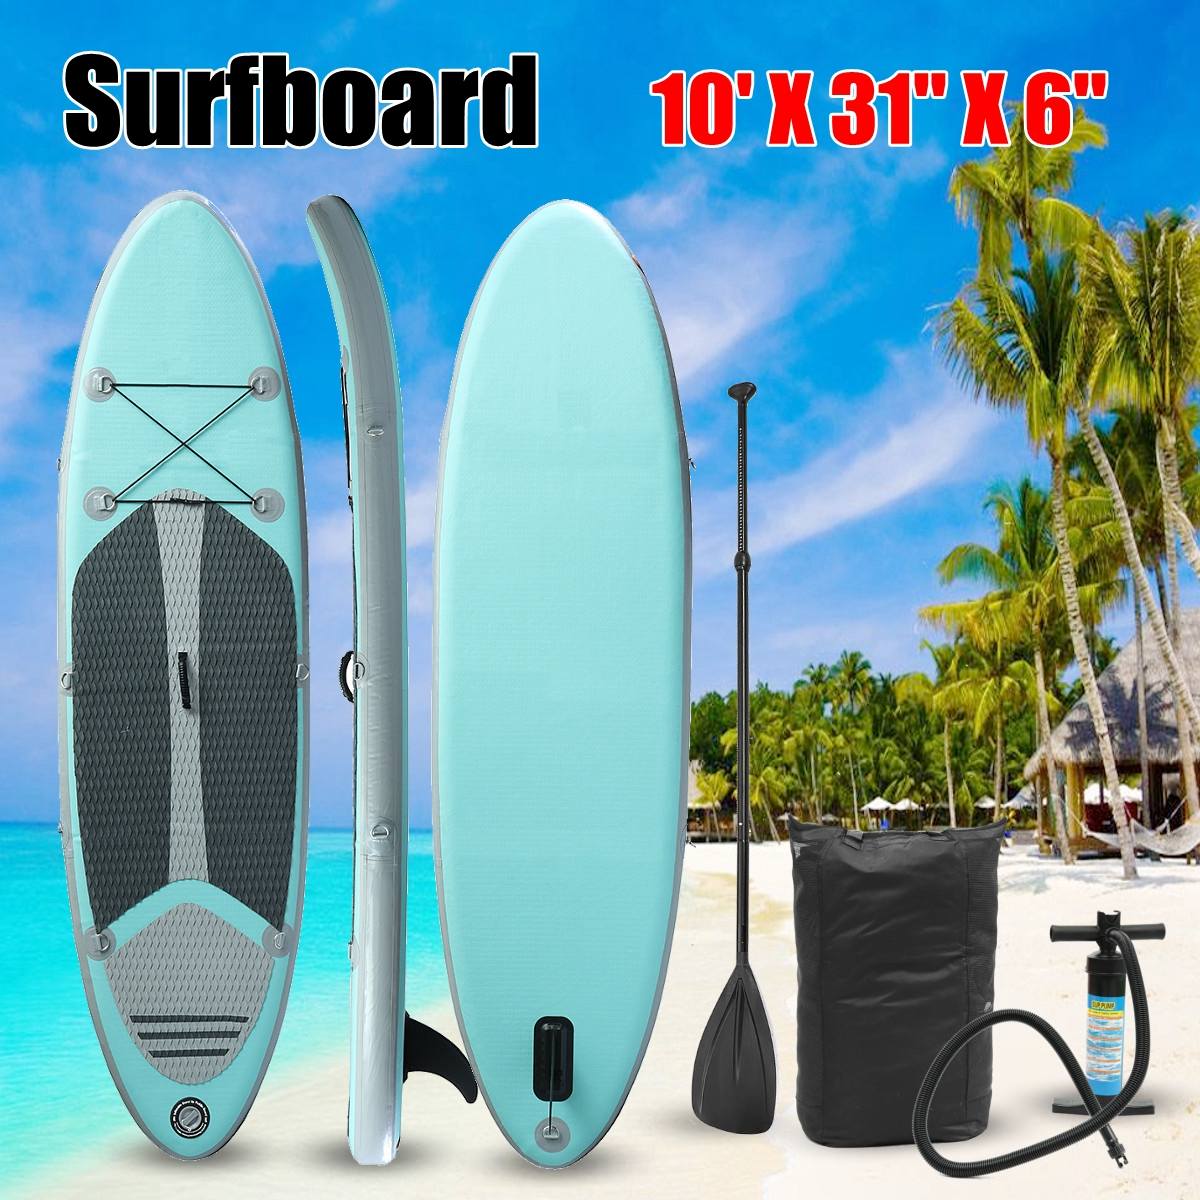 285x78x15cm SUP Board Stand Up Planche de paddle gonflable Paddling Surfboard inflatable surf board sup paddle boat water sport inflatable sup board surf stand up paddle boards